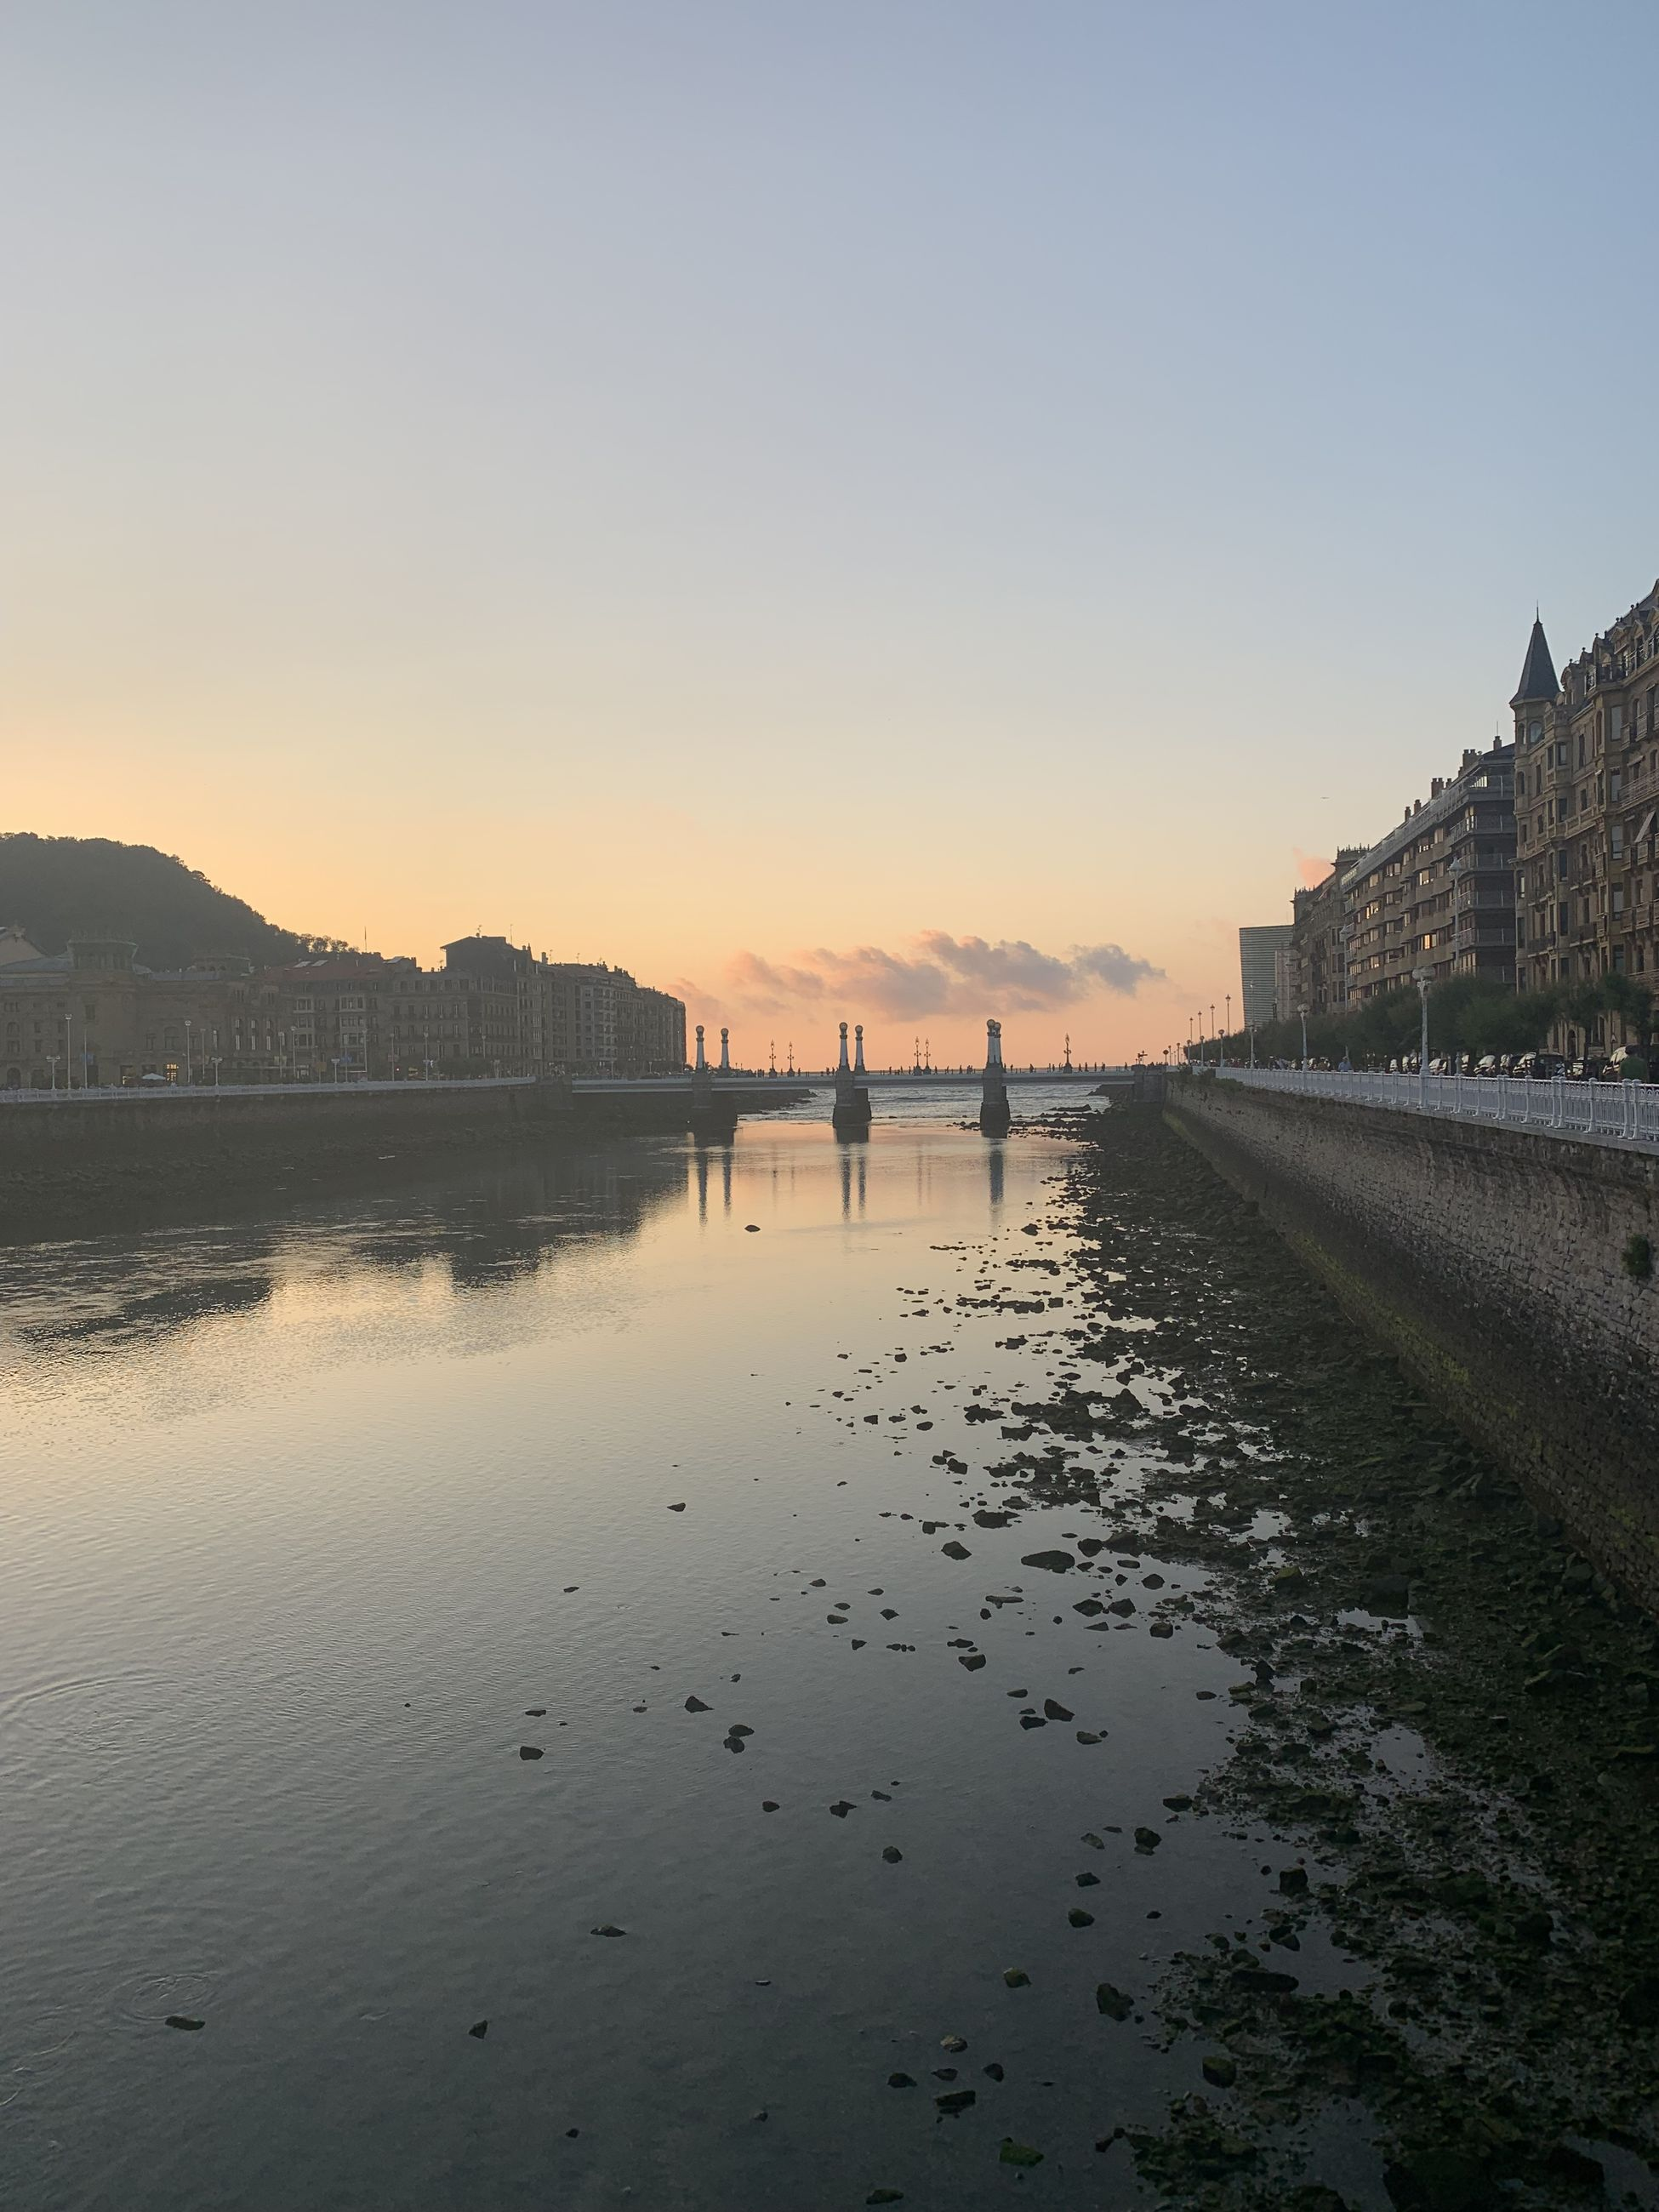 Scenic view of river against clear sky during sunset